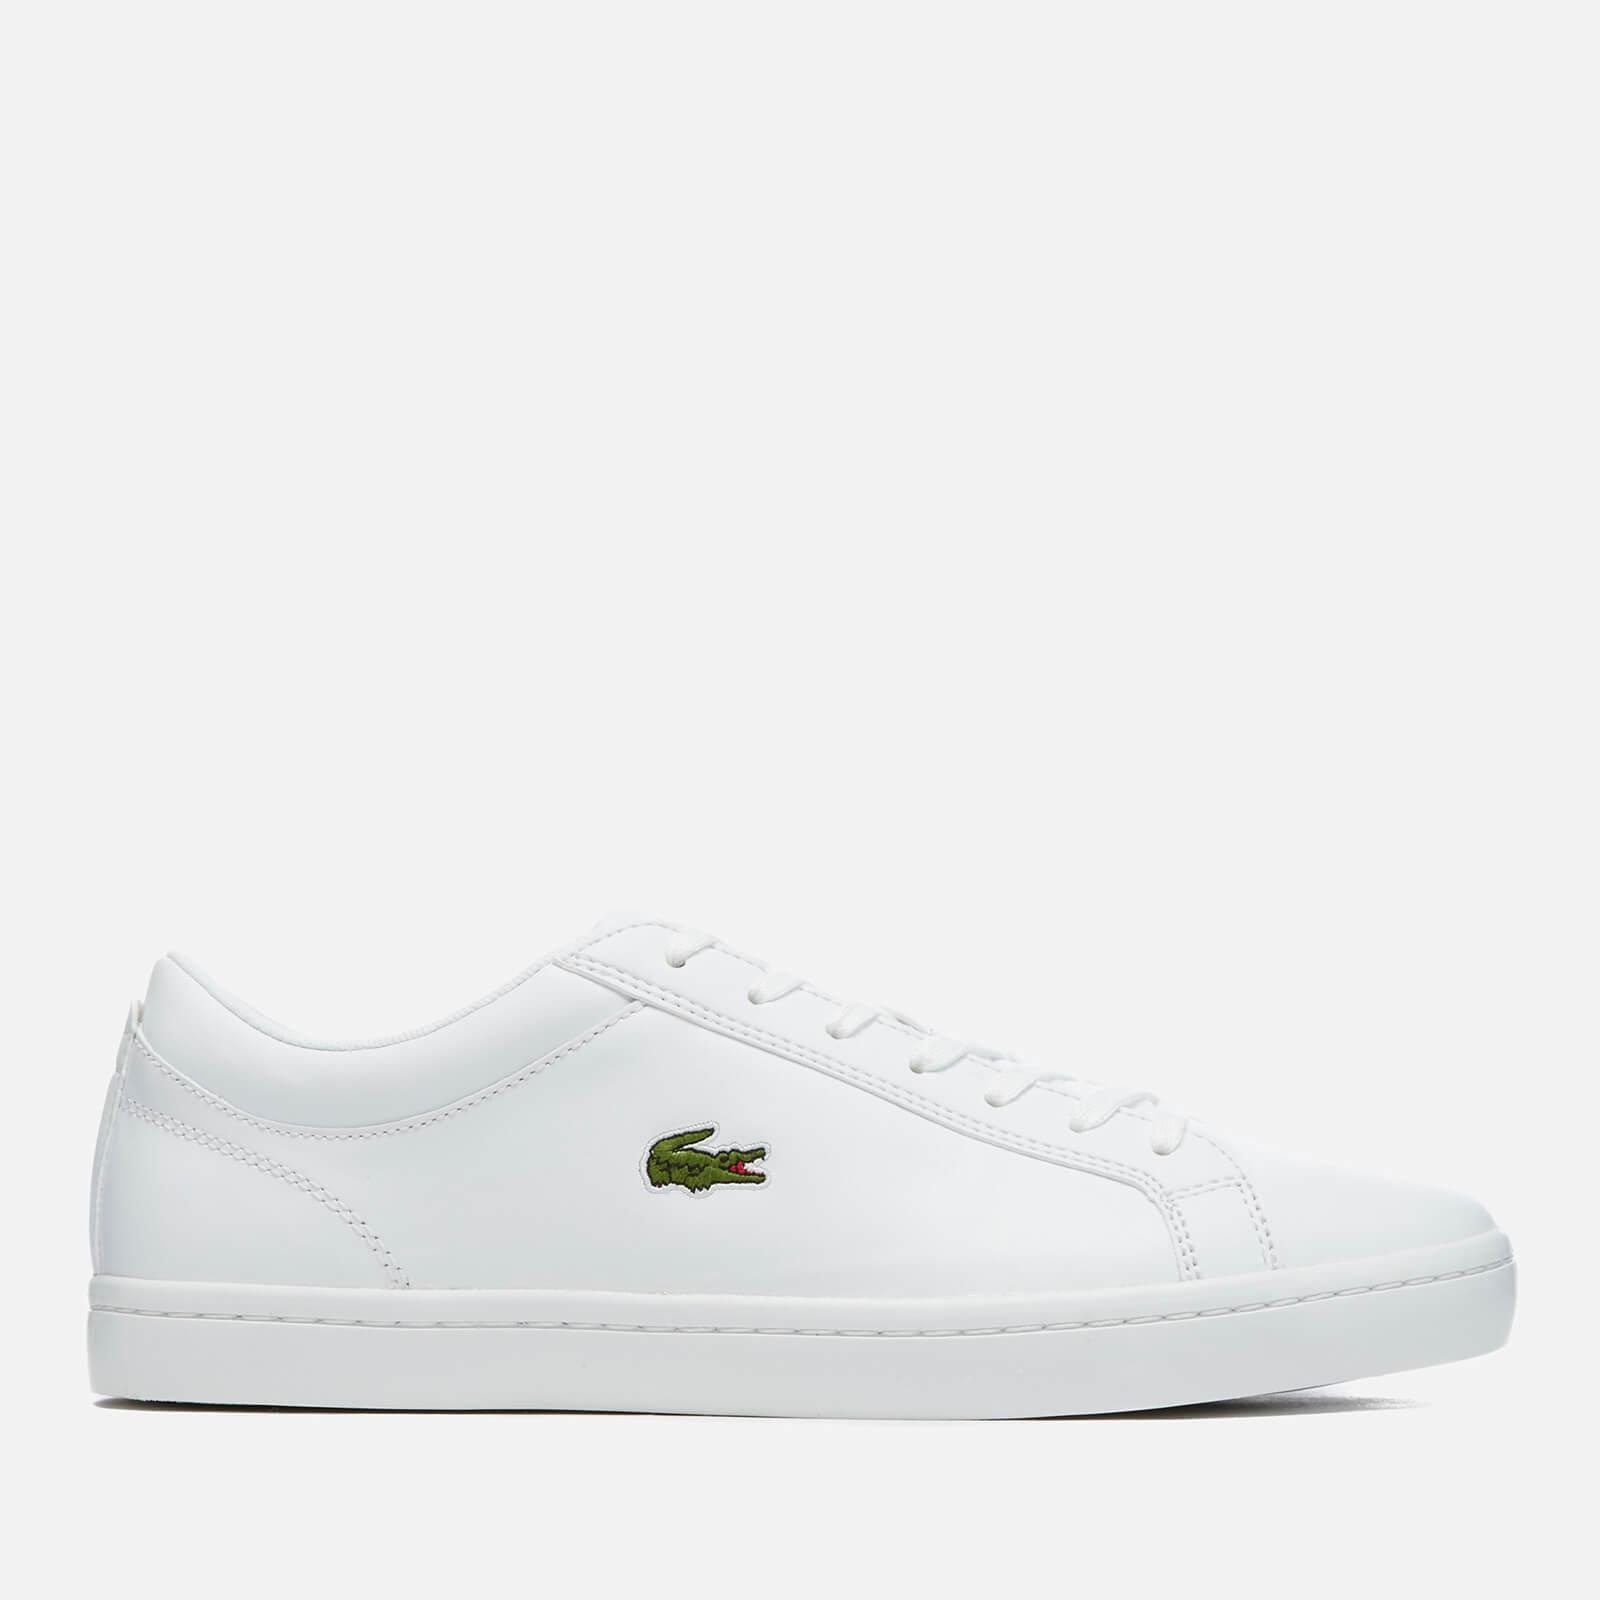 9461fc303 Lyst - Lacoste Straightset Bl 1 Leather Trainers in White for Men